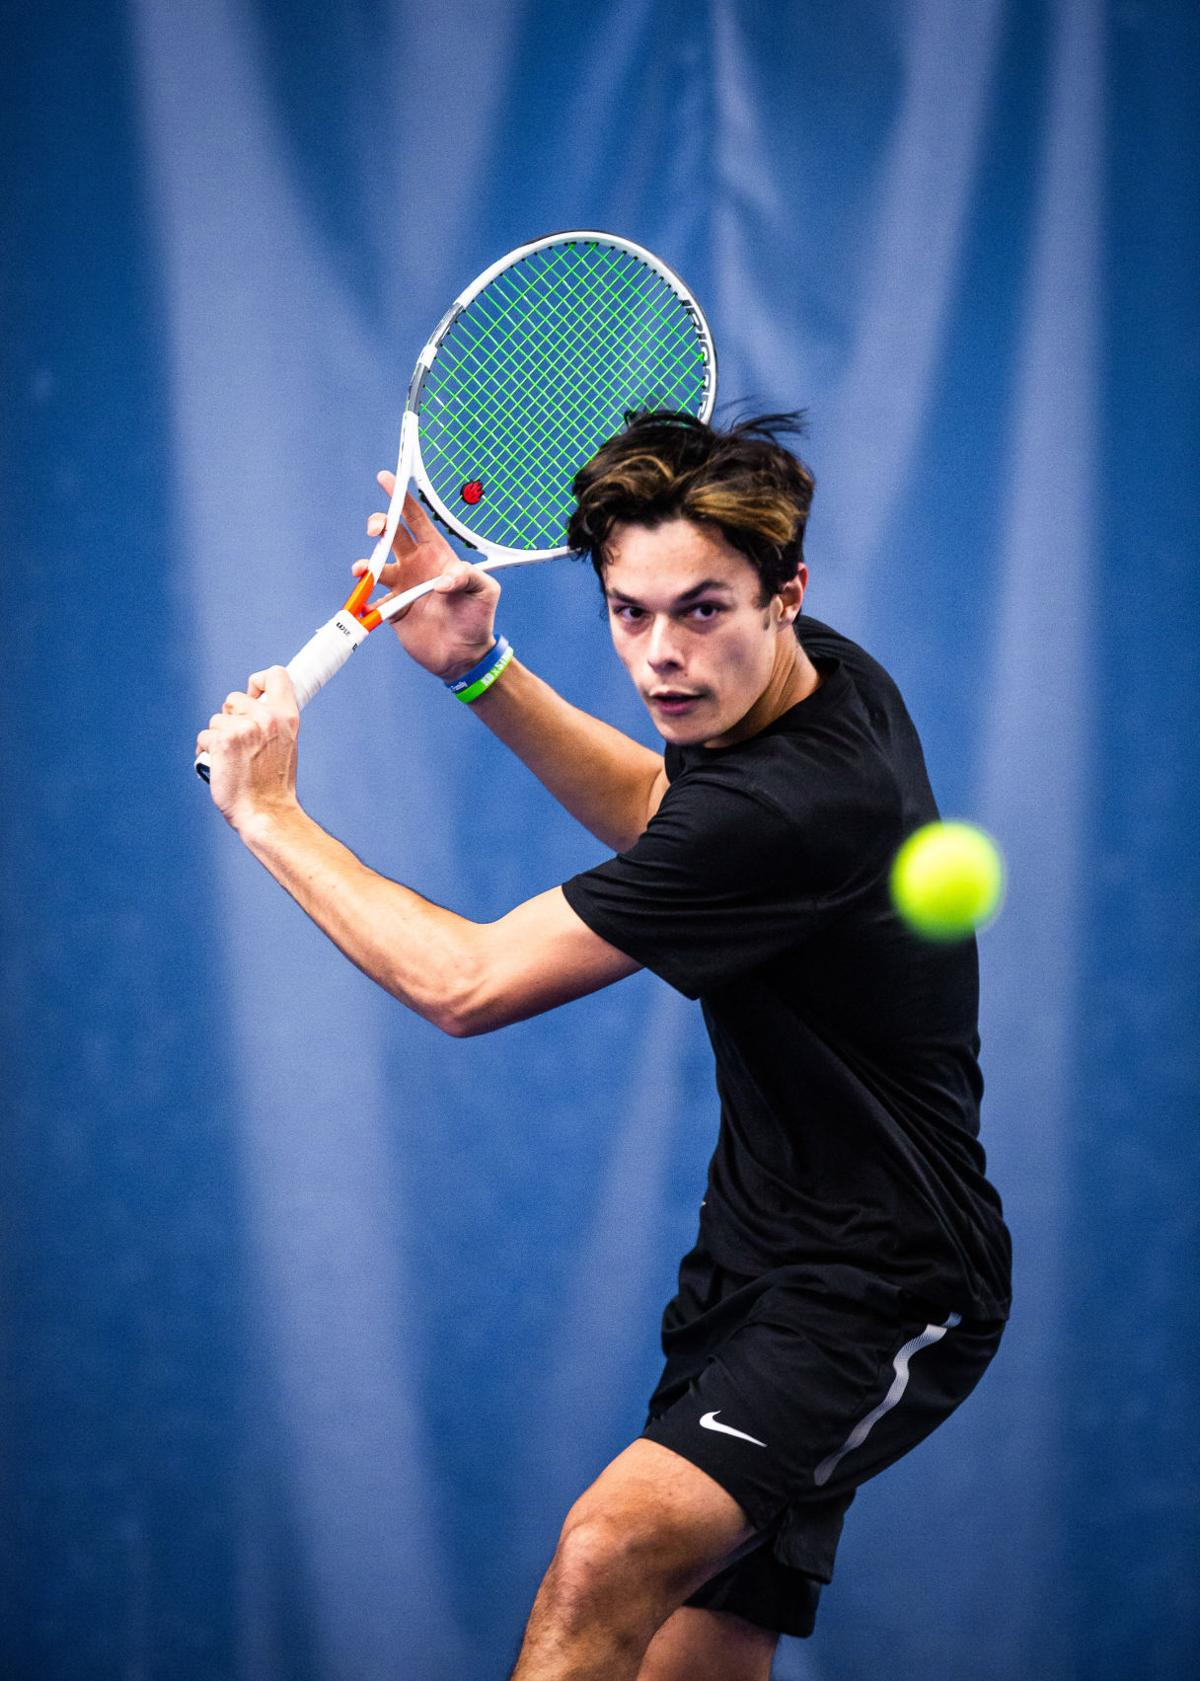 Gonzaga men's tennis looks to reload with experience and youth